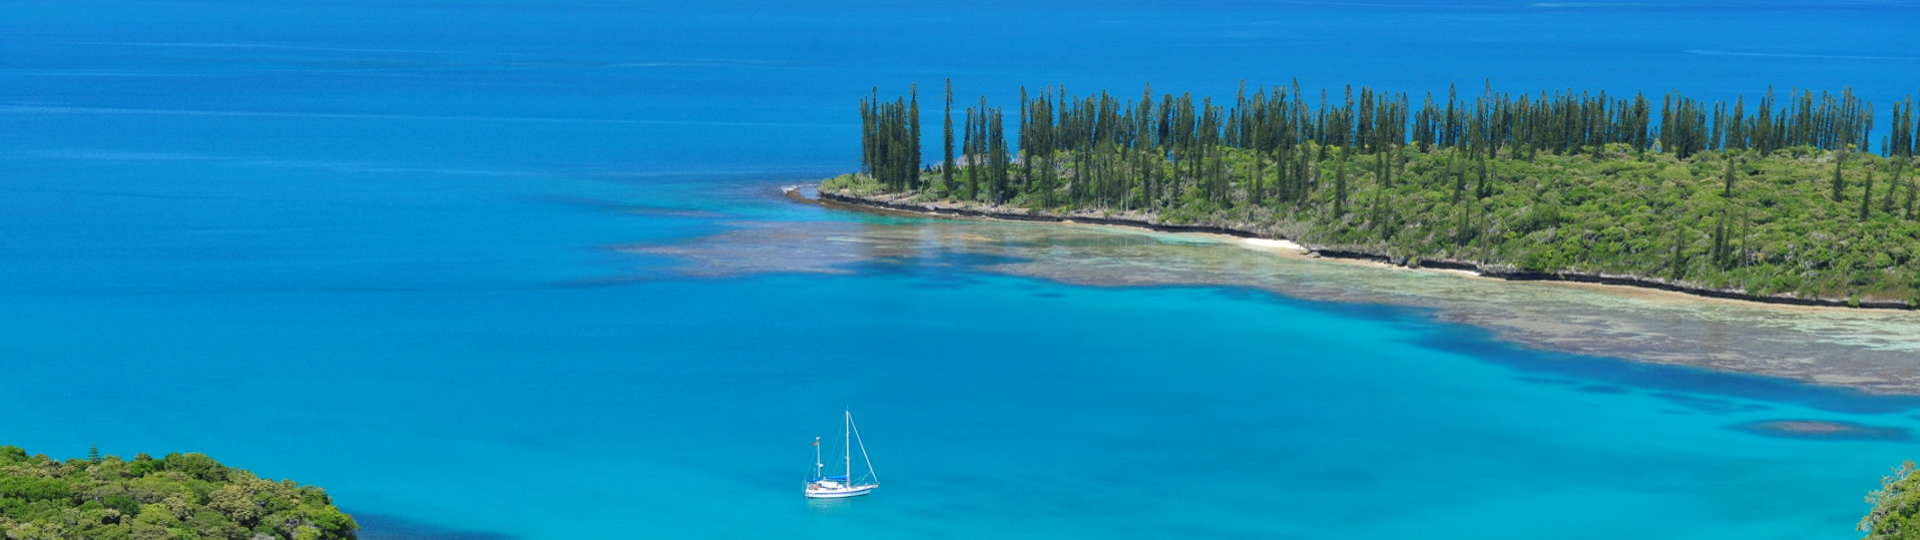 Kuto and Kanumera Bay Isle of Pines New Caledonia